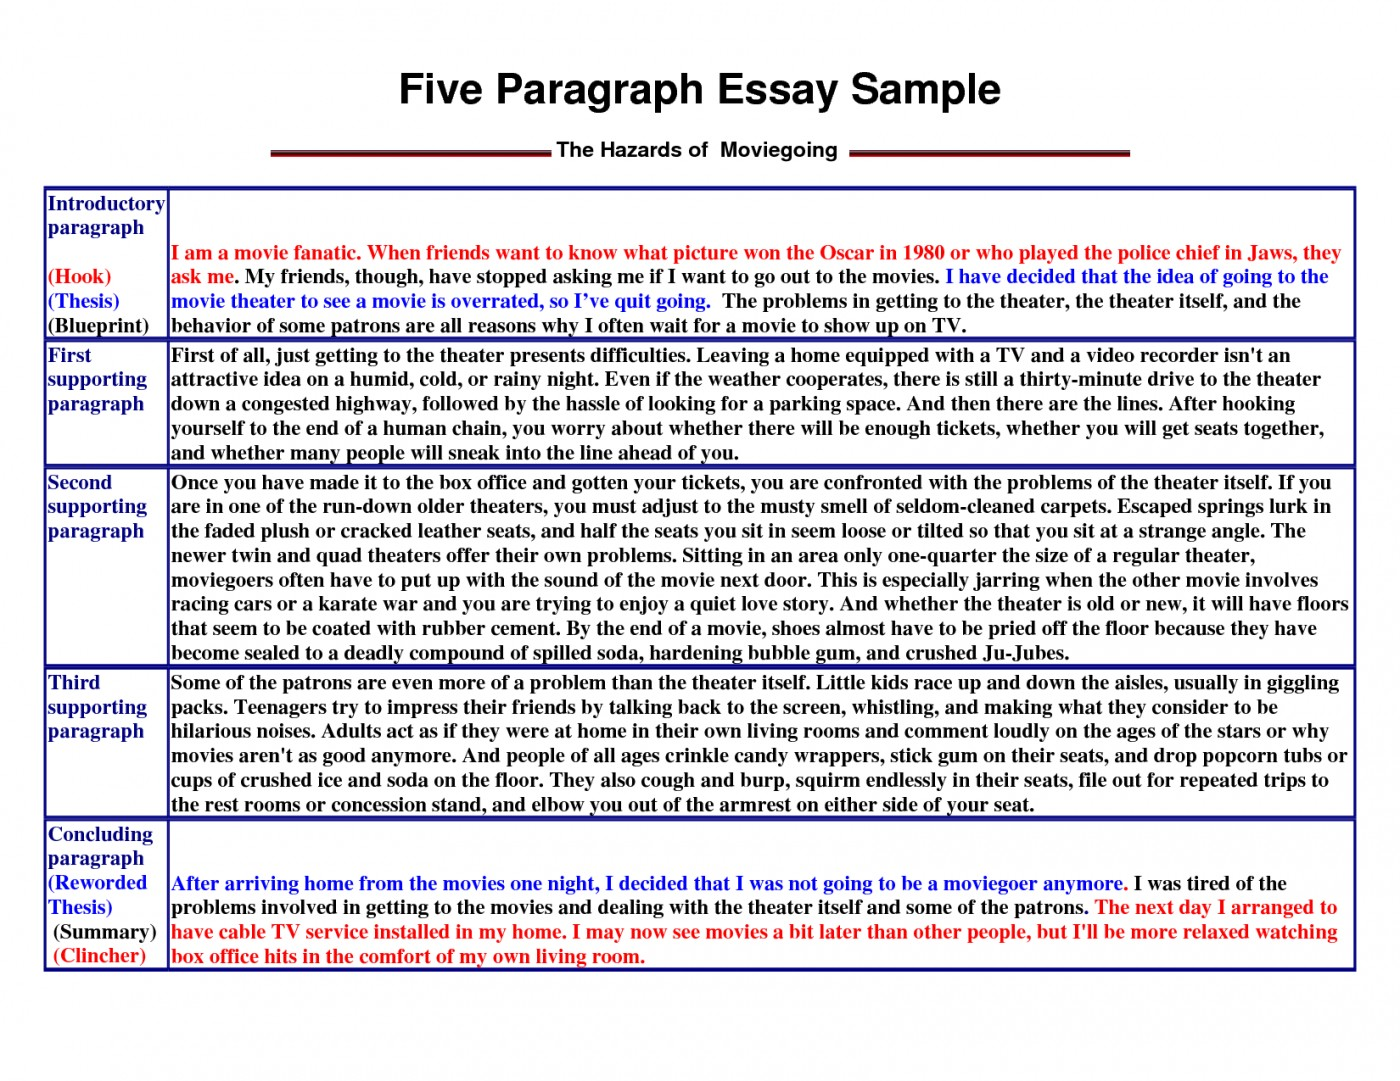 016 Paragraph Essay Singular 5 Outline High School Example 6th Grade Topics For 5th 1400